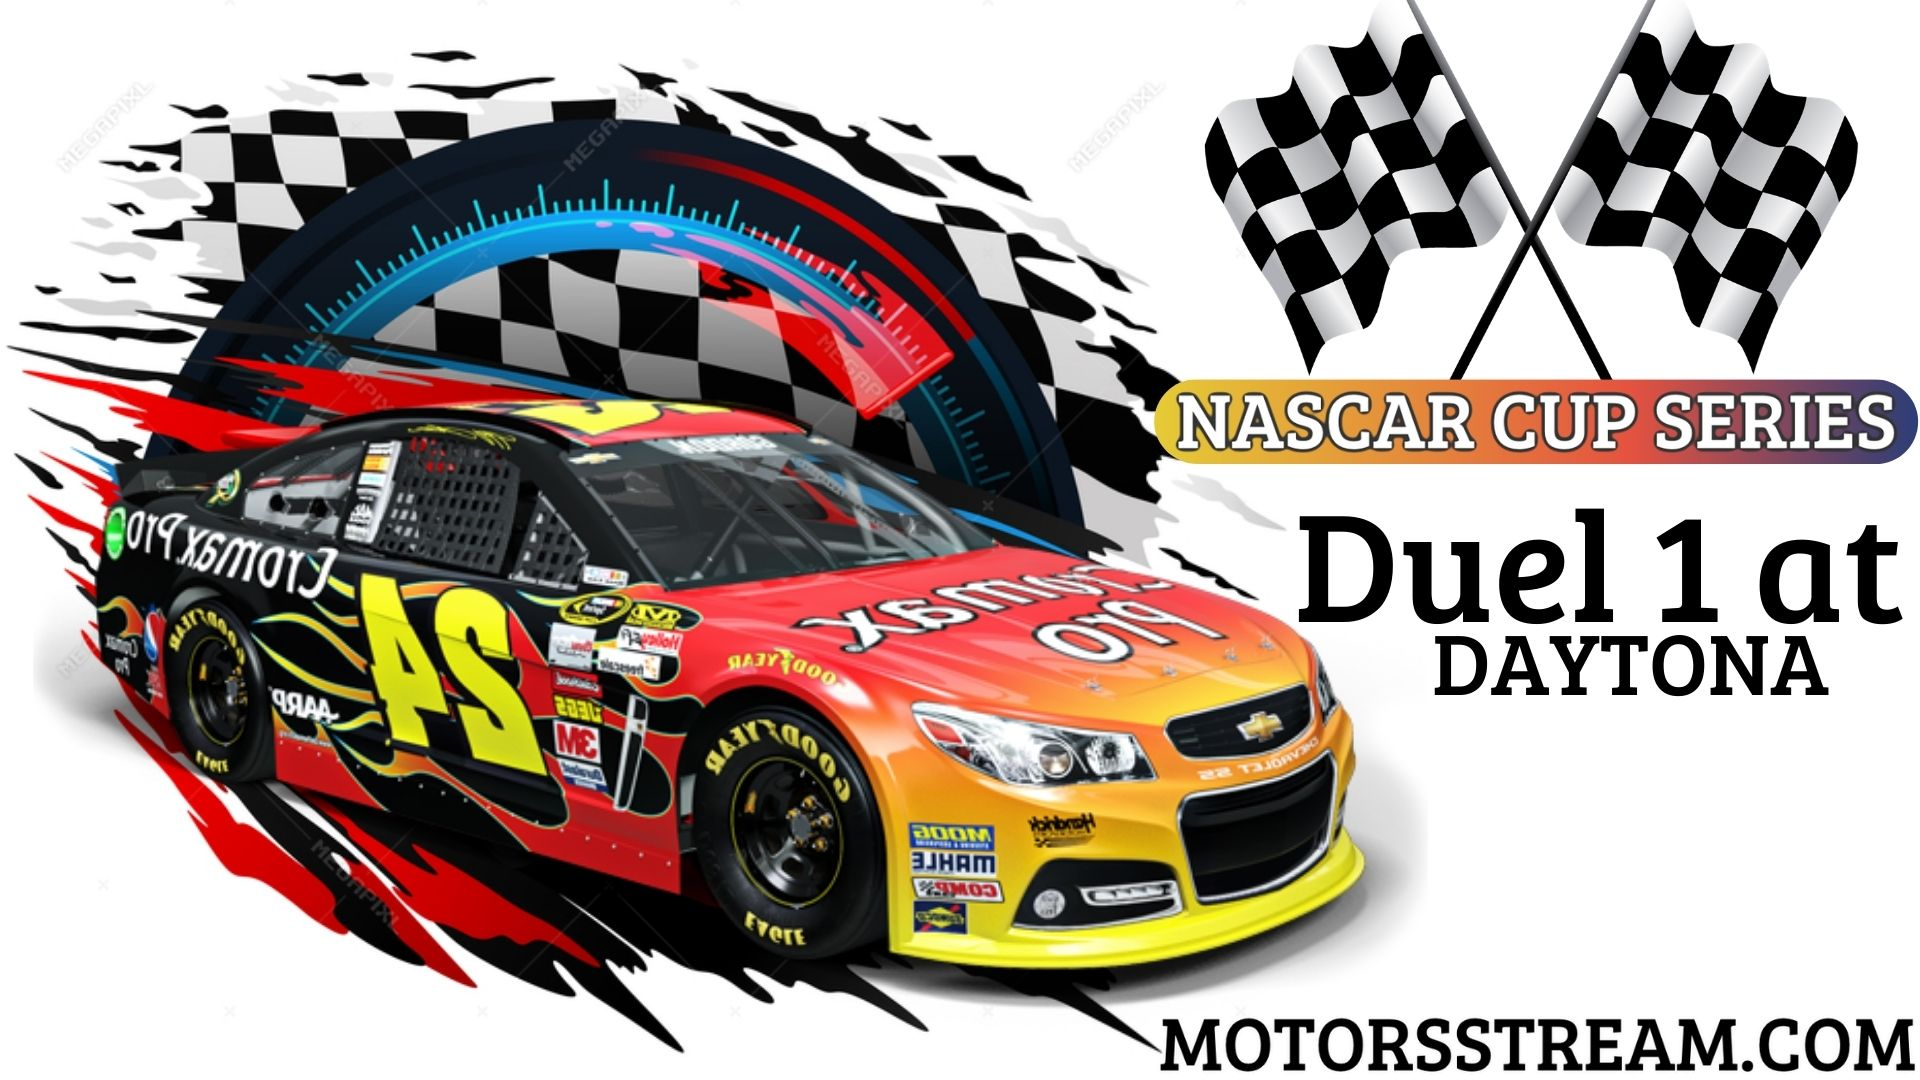 Duel 1 At Daytona Live Stream | NASCAR Cup 2021